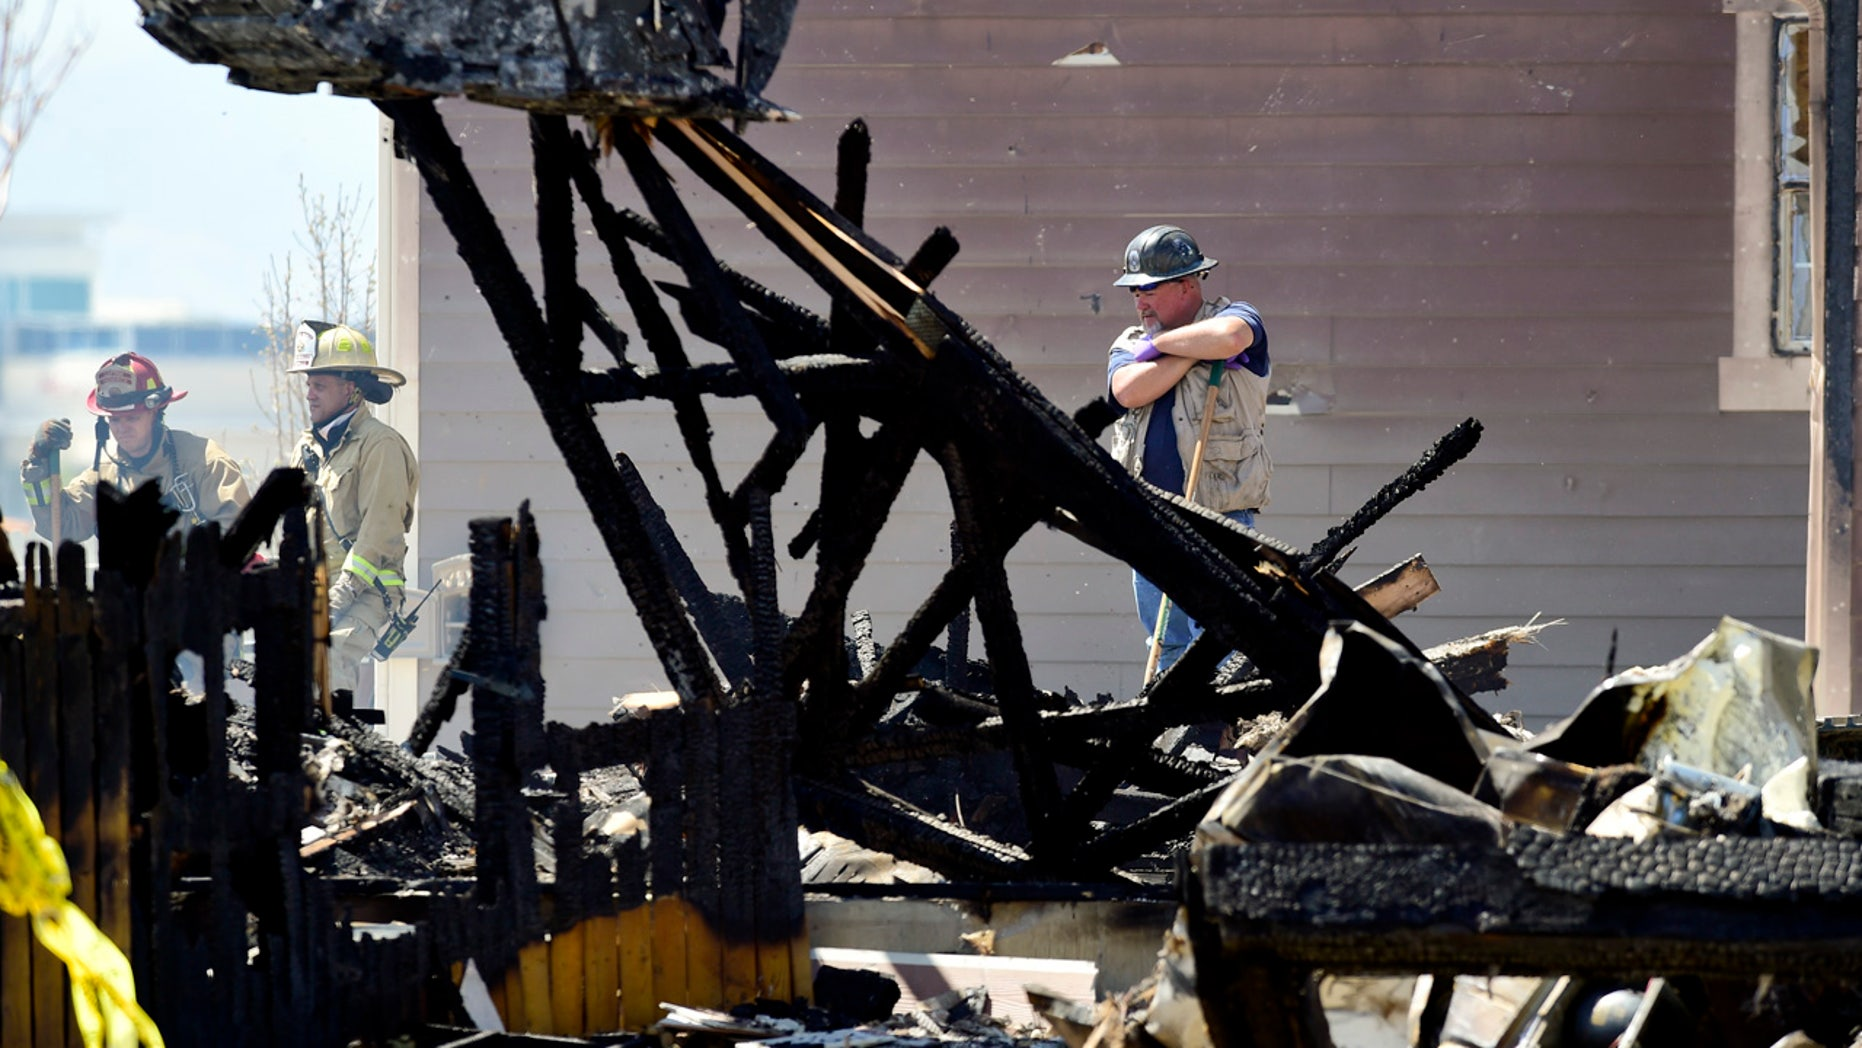 In this April 18, 2017, photo, investigators stand by as debris is removed from a house that was destroyed in a deadly explosion in Firestone, Colo., on April 17,